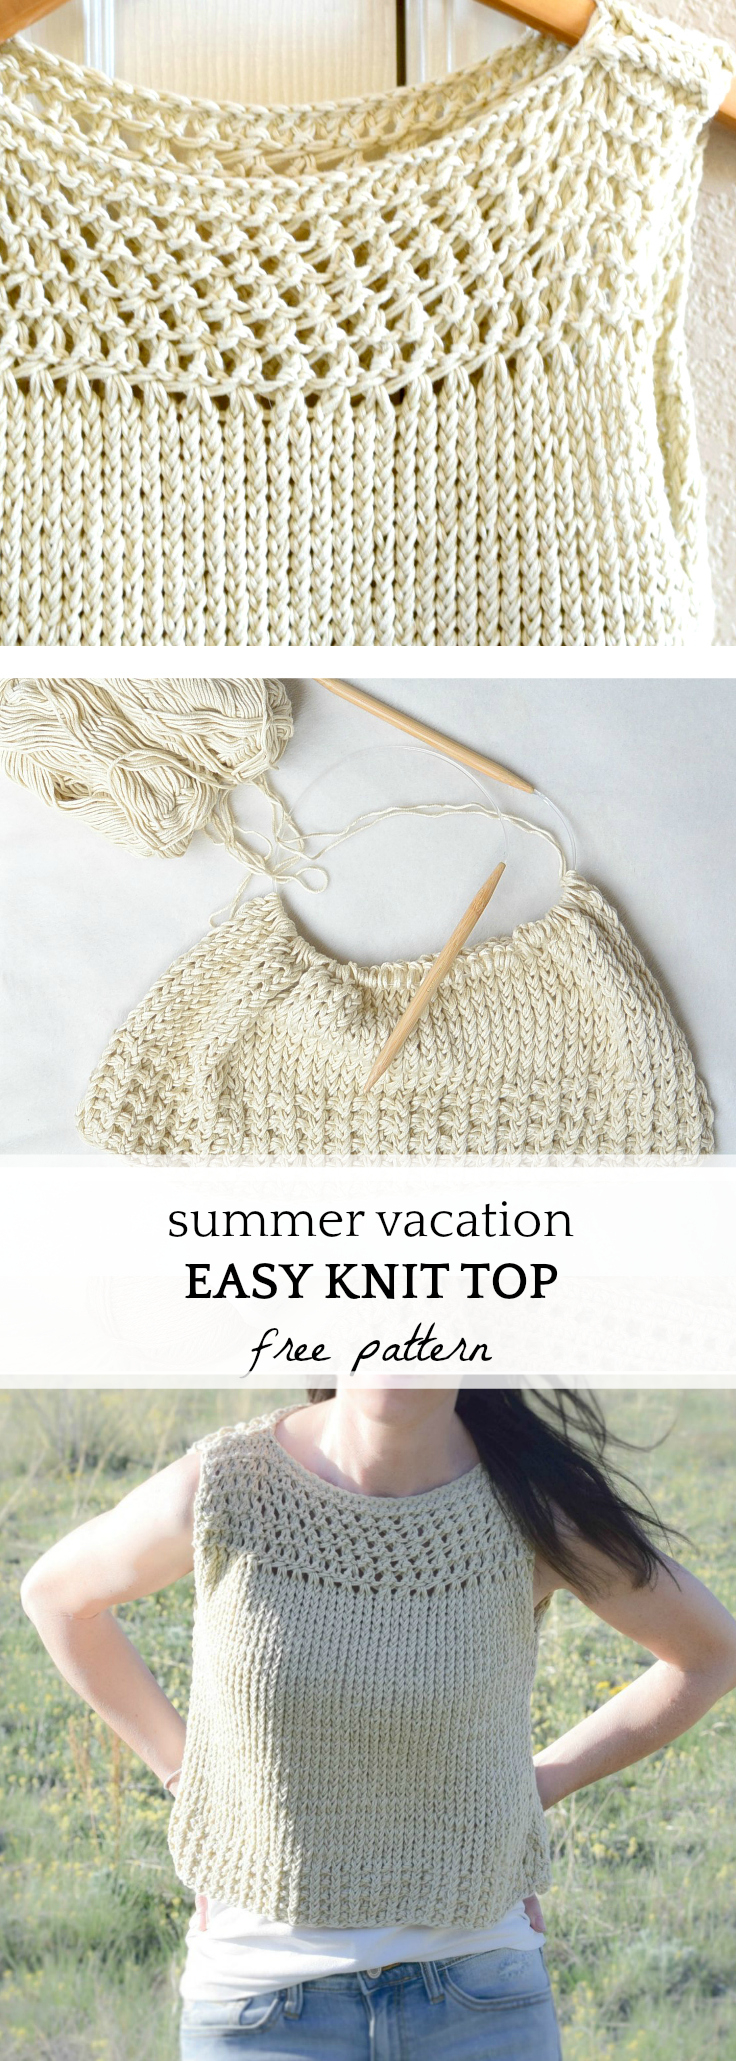 Free Lopi Knitting Patterns Free Sequence Knitting Patterns